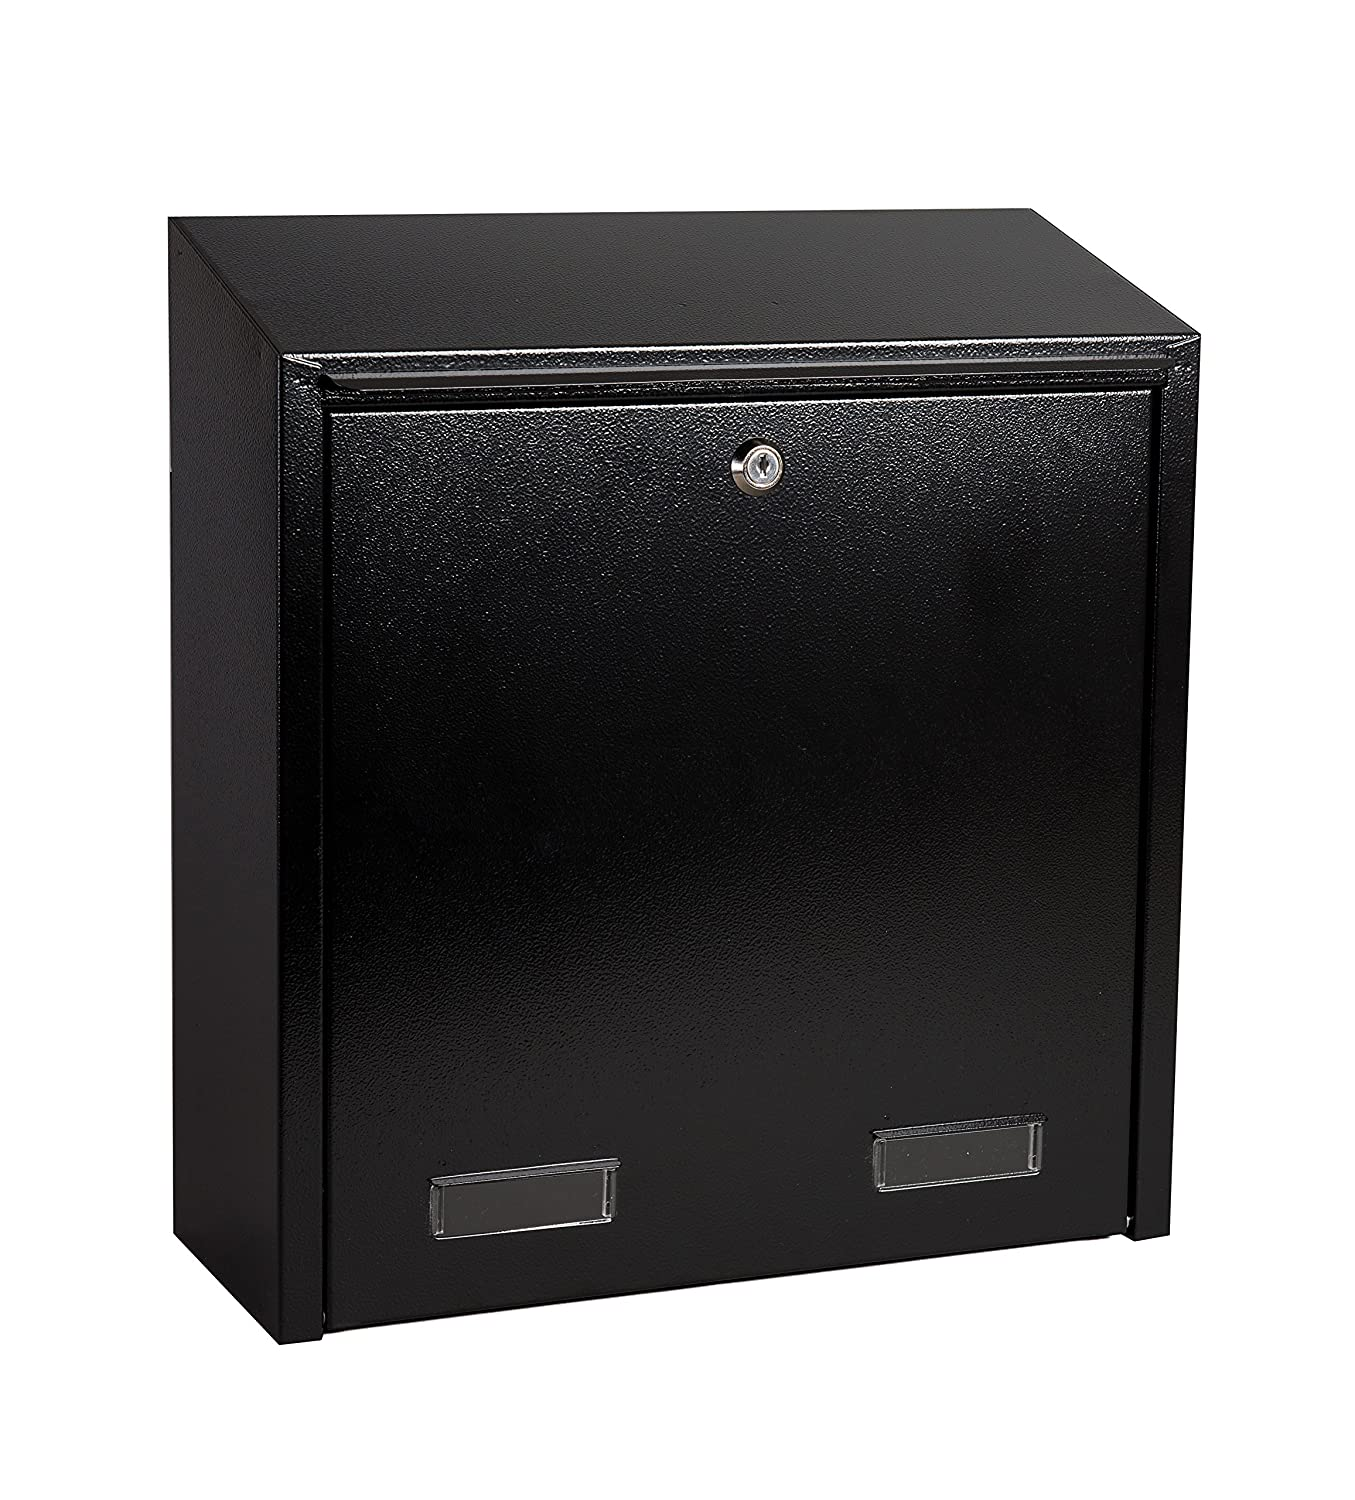 Rear Access Letter Box.Letterbox4you W3 Range W3 6 Rear Access Collection Box Black